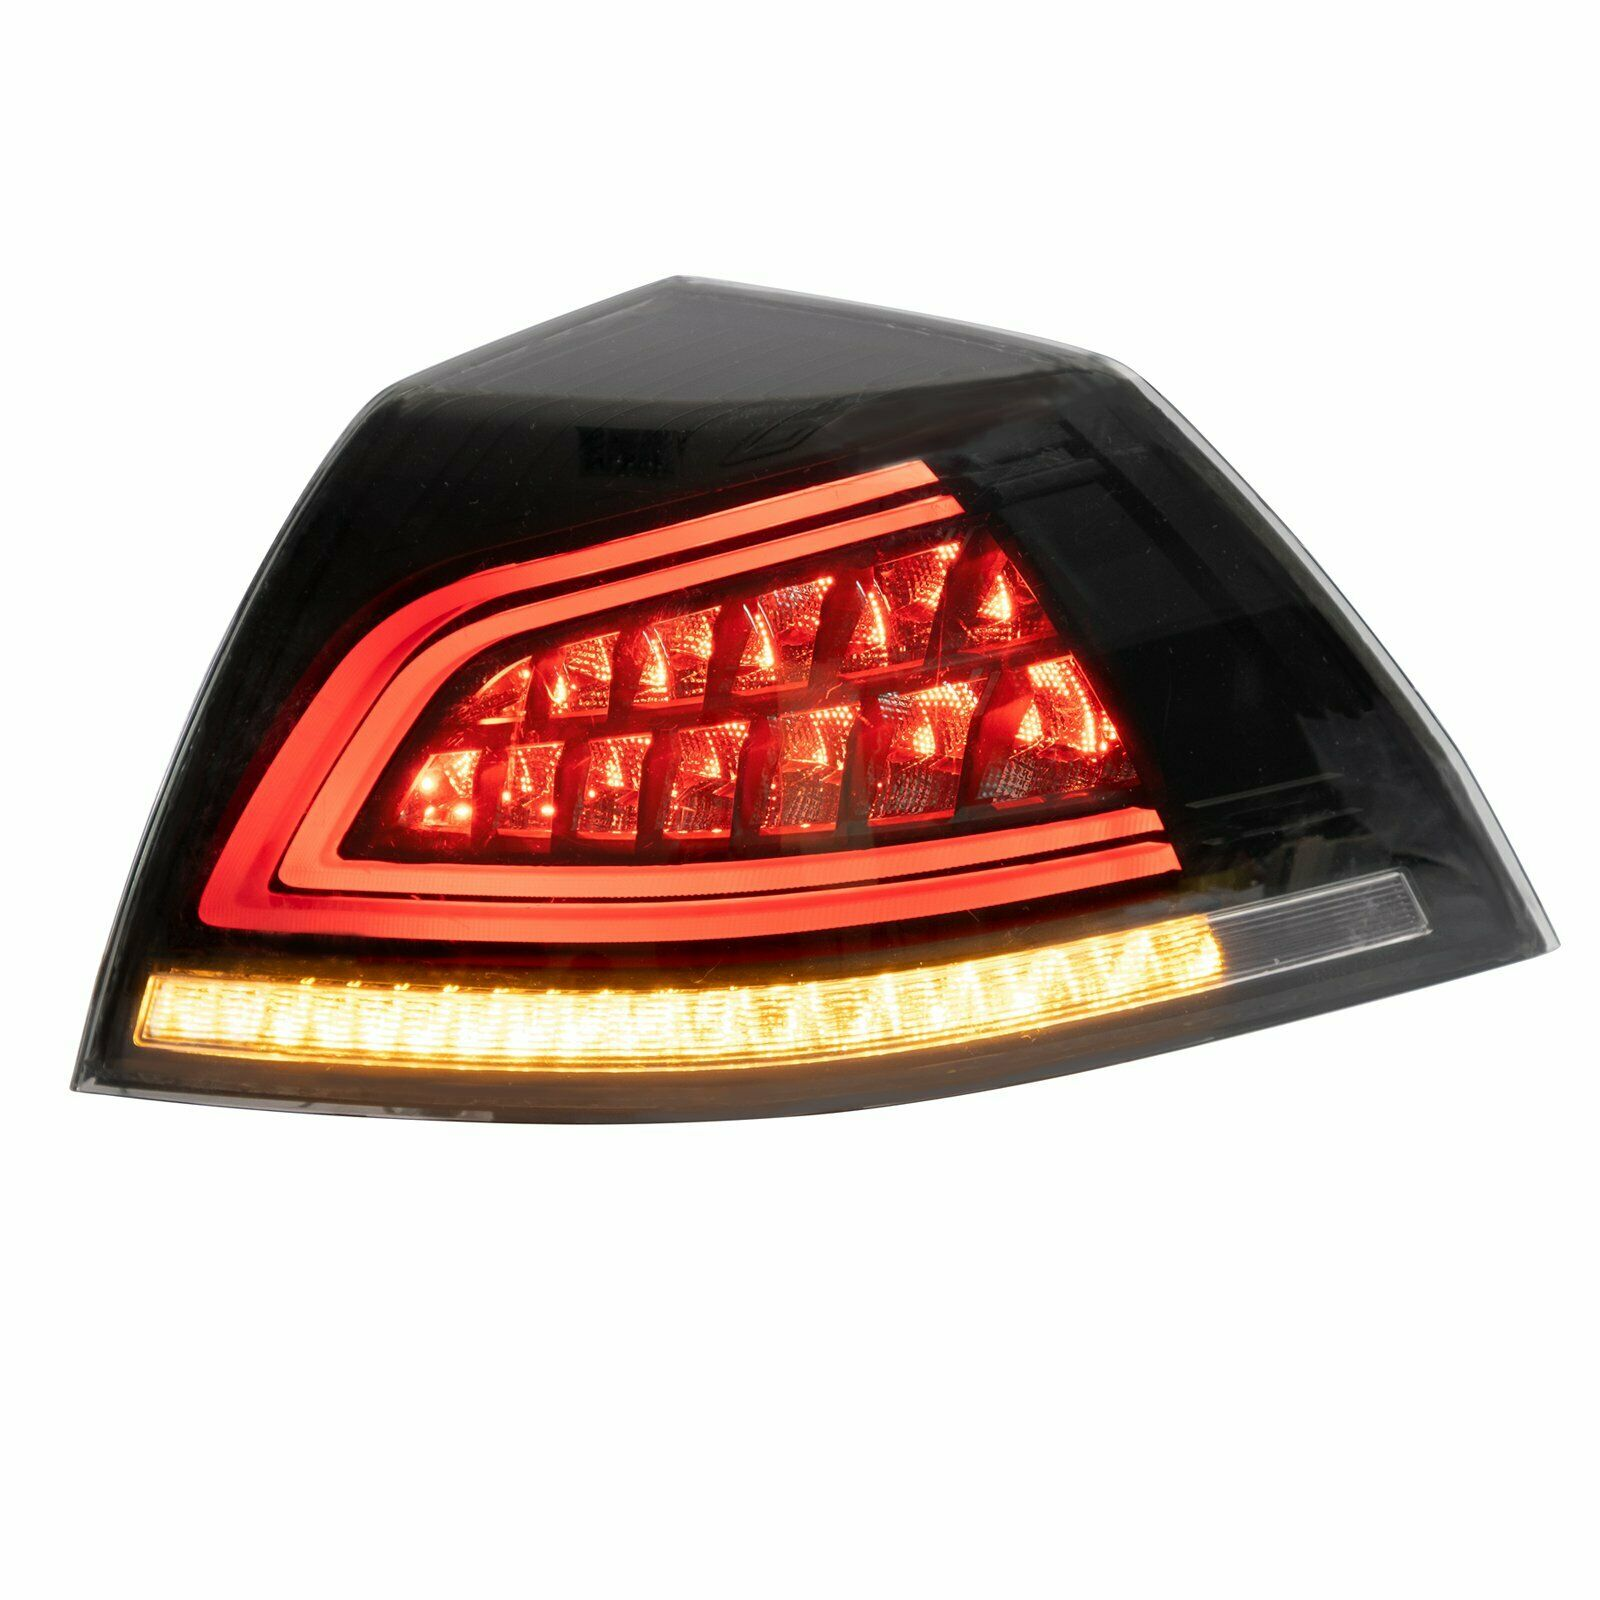 Fit For Holden VE Commodore Series 1 Series 2 Sedan Smoke LED Tail Lights Sequential Blinker image